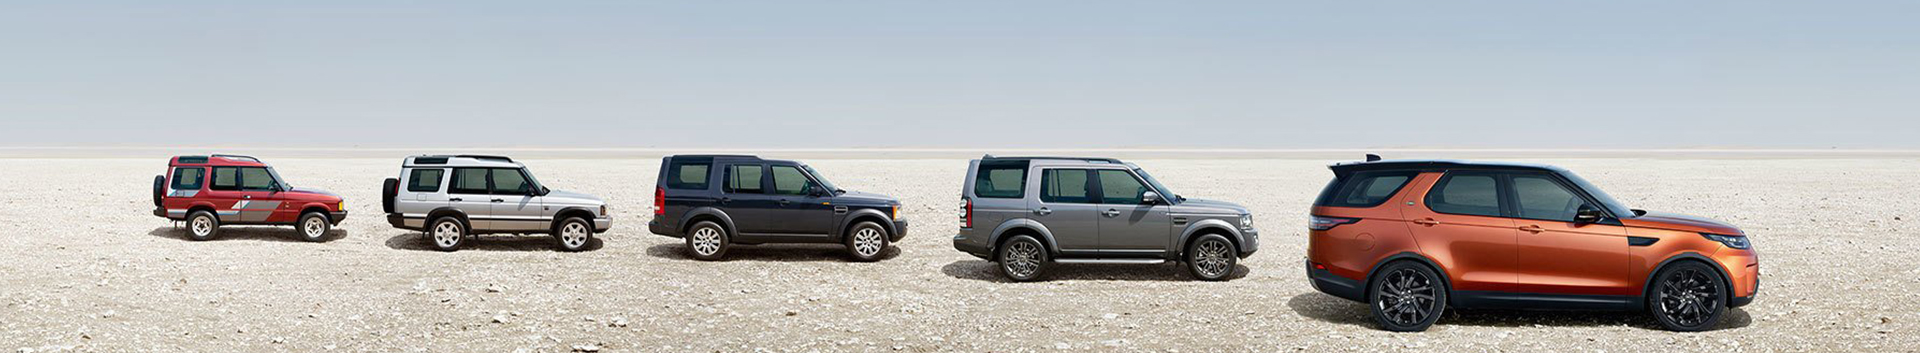 Land Rover Discovery through the years